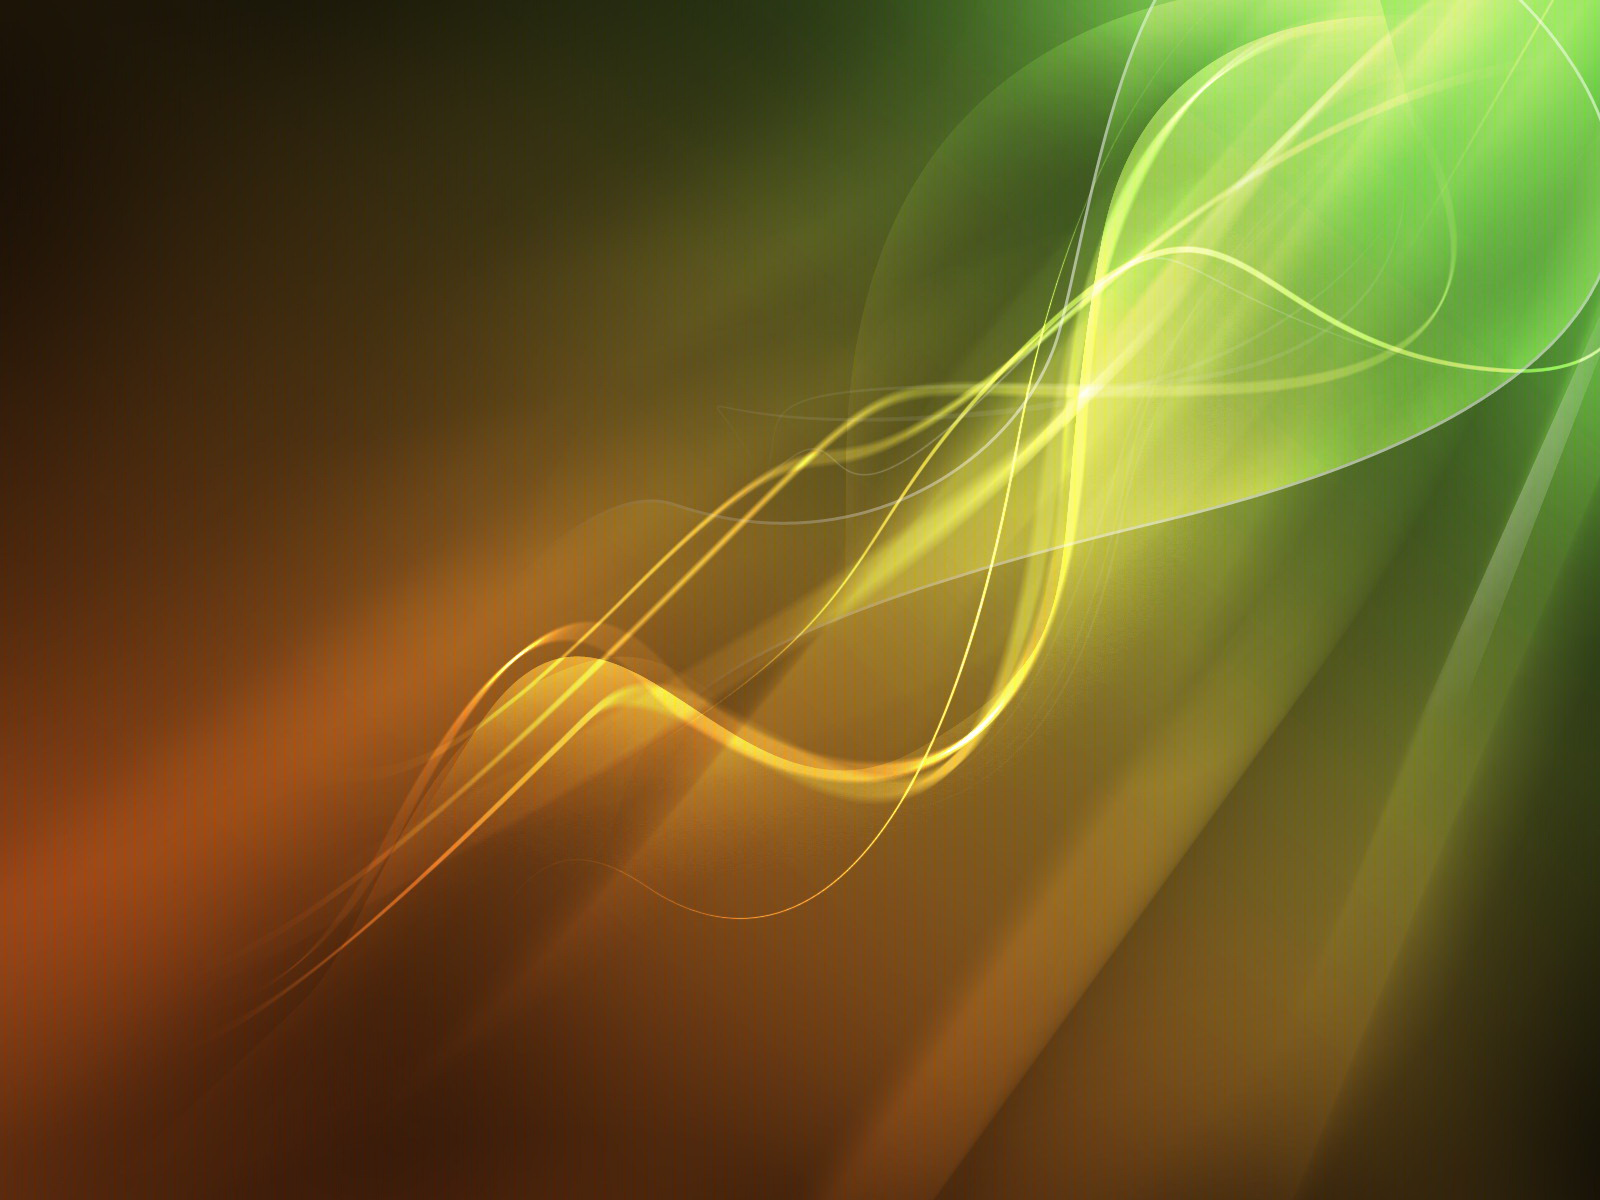 Green Orange Imagination   1600x1200   43 1600x1200